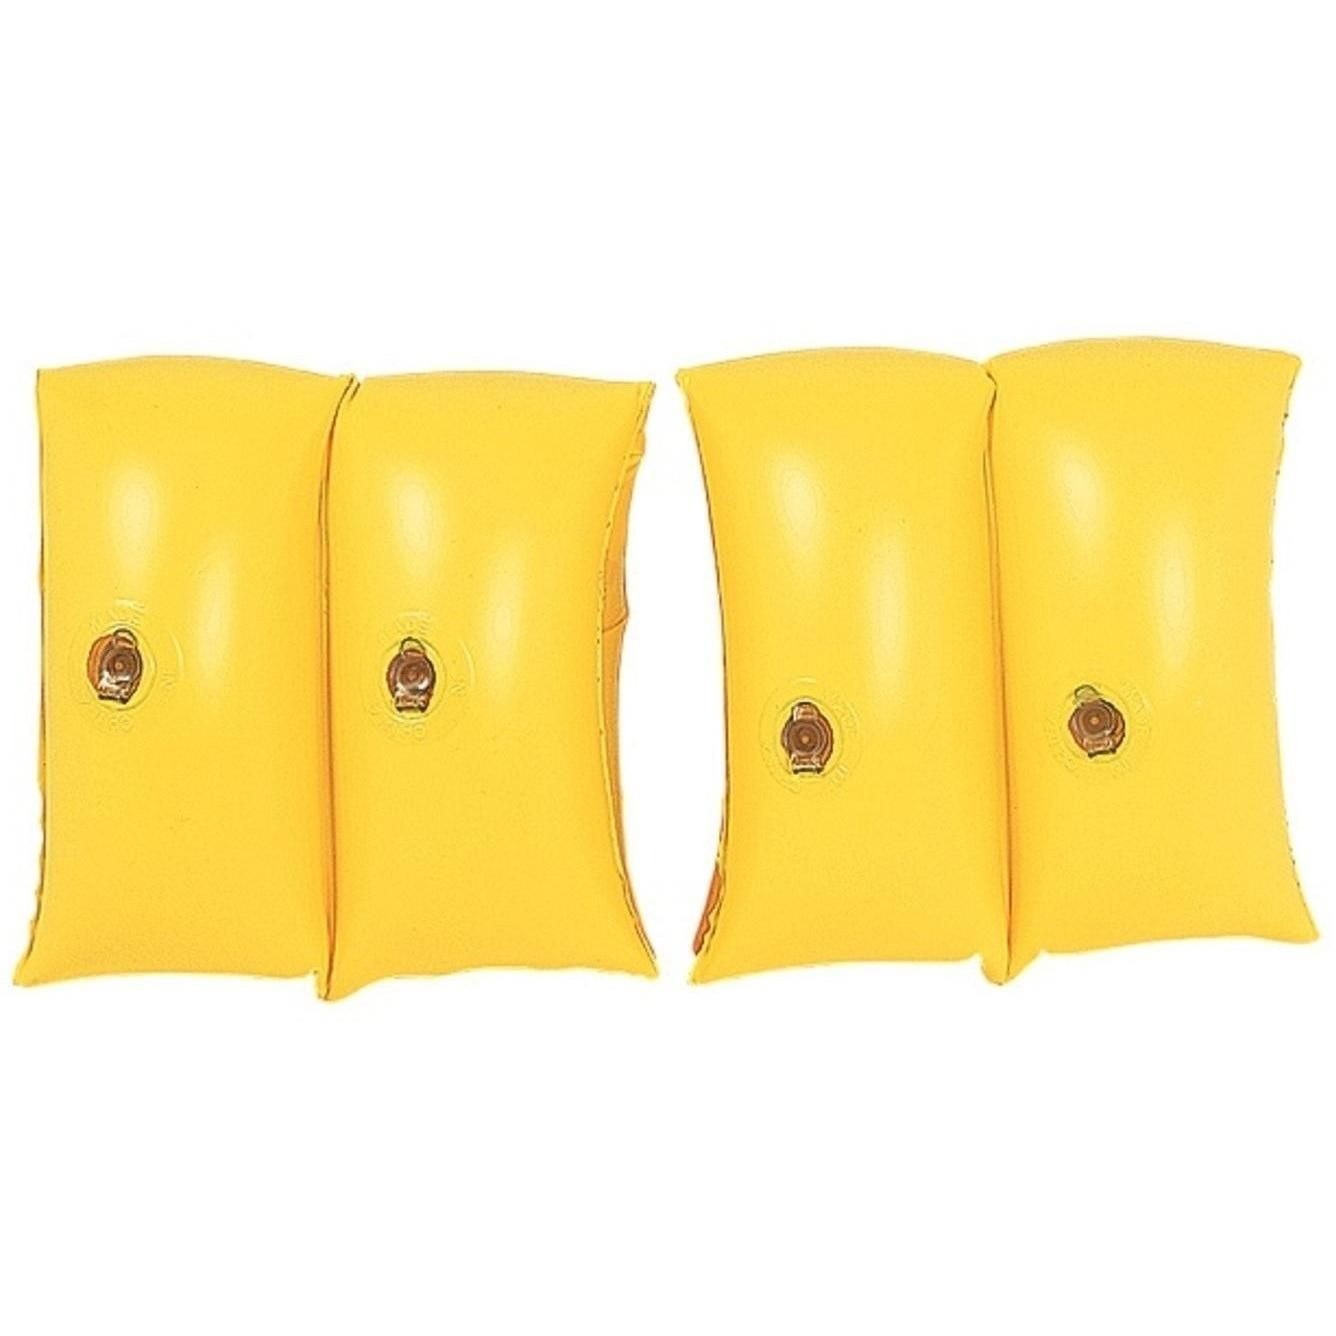 Jilong Set of 2 Yellow Inflatable Swimming Pool Arm Floats for Kids 3-6 Years 32148647